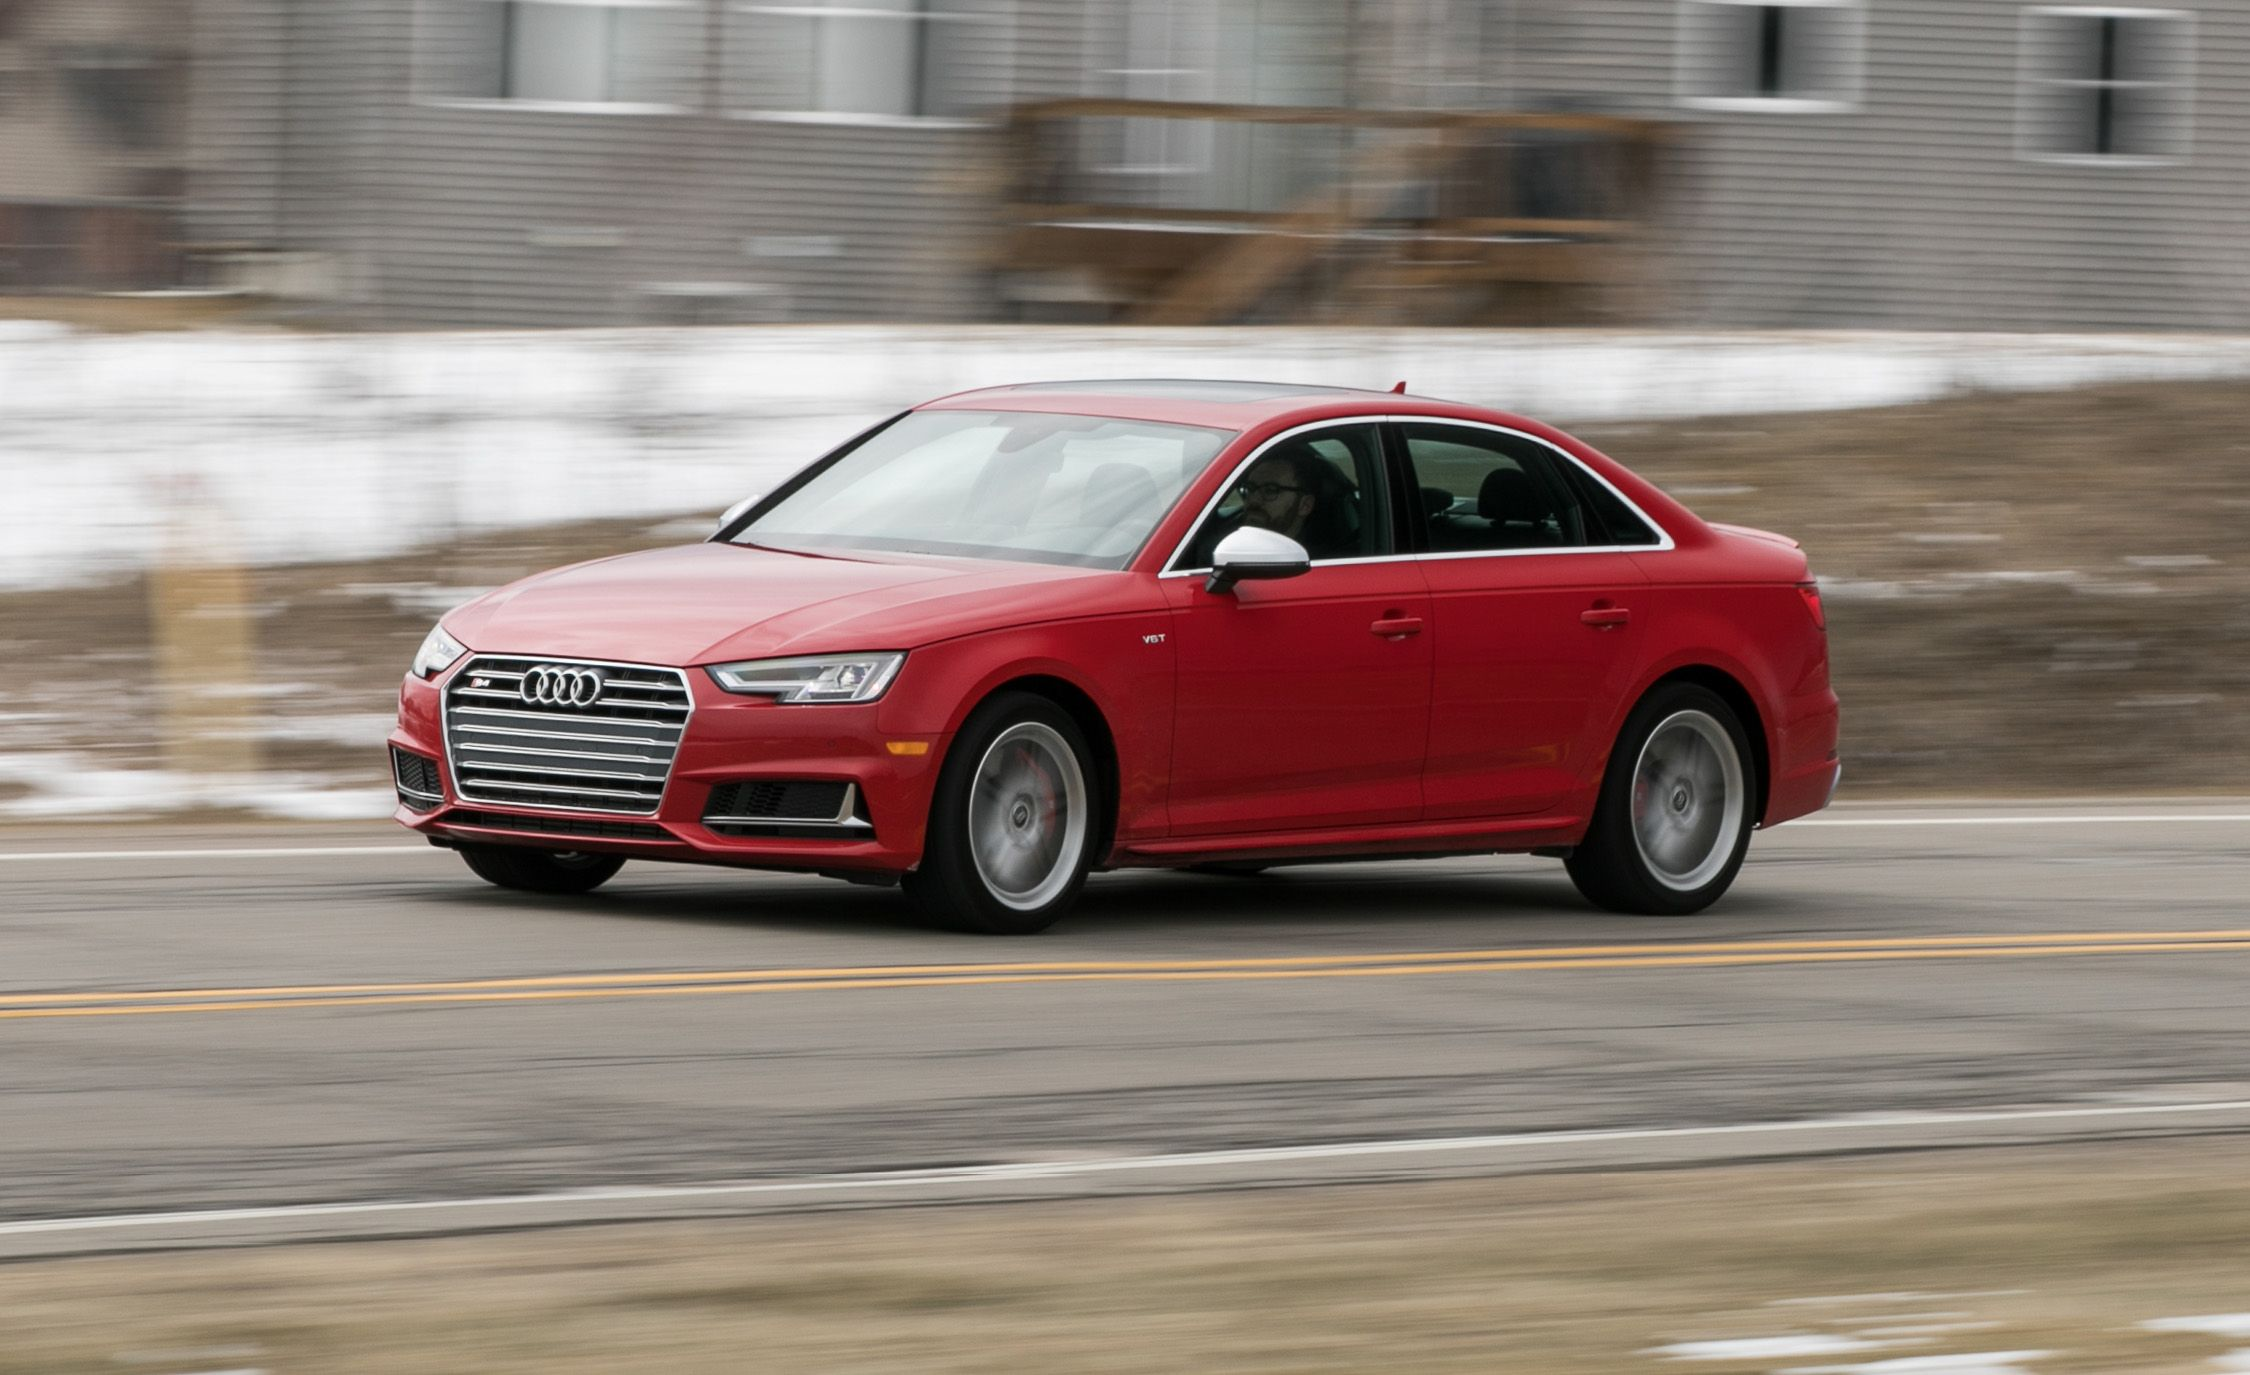 Audi S InDepth Model Review Car And Driver - Audi s4 2018